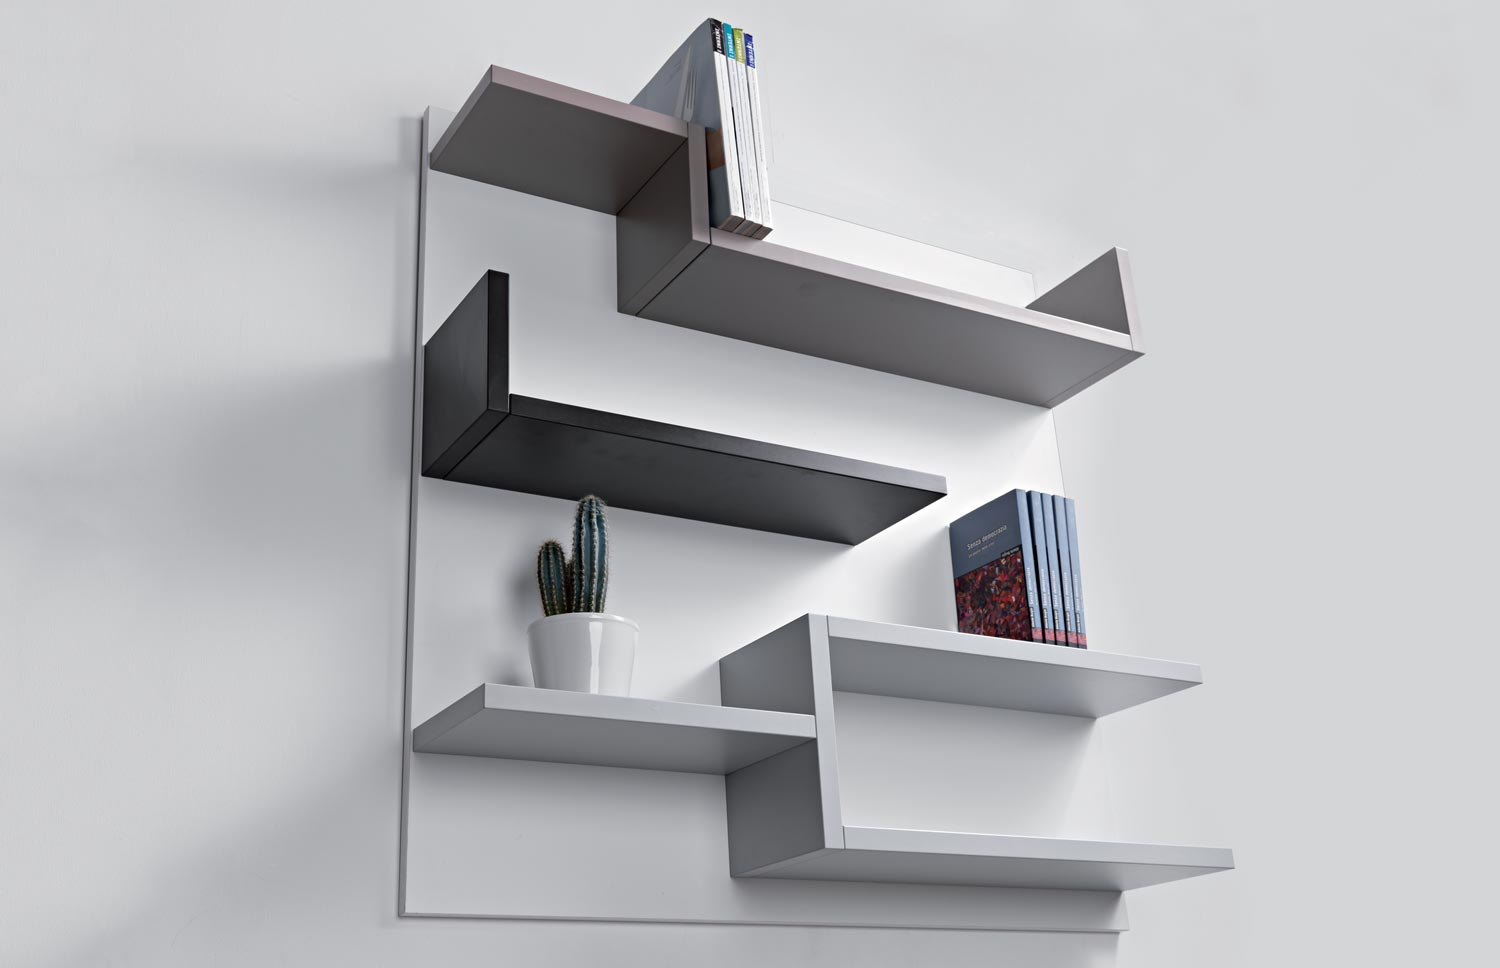 Mensole Legno Colorate.Libreria Myshelf